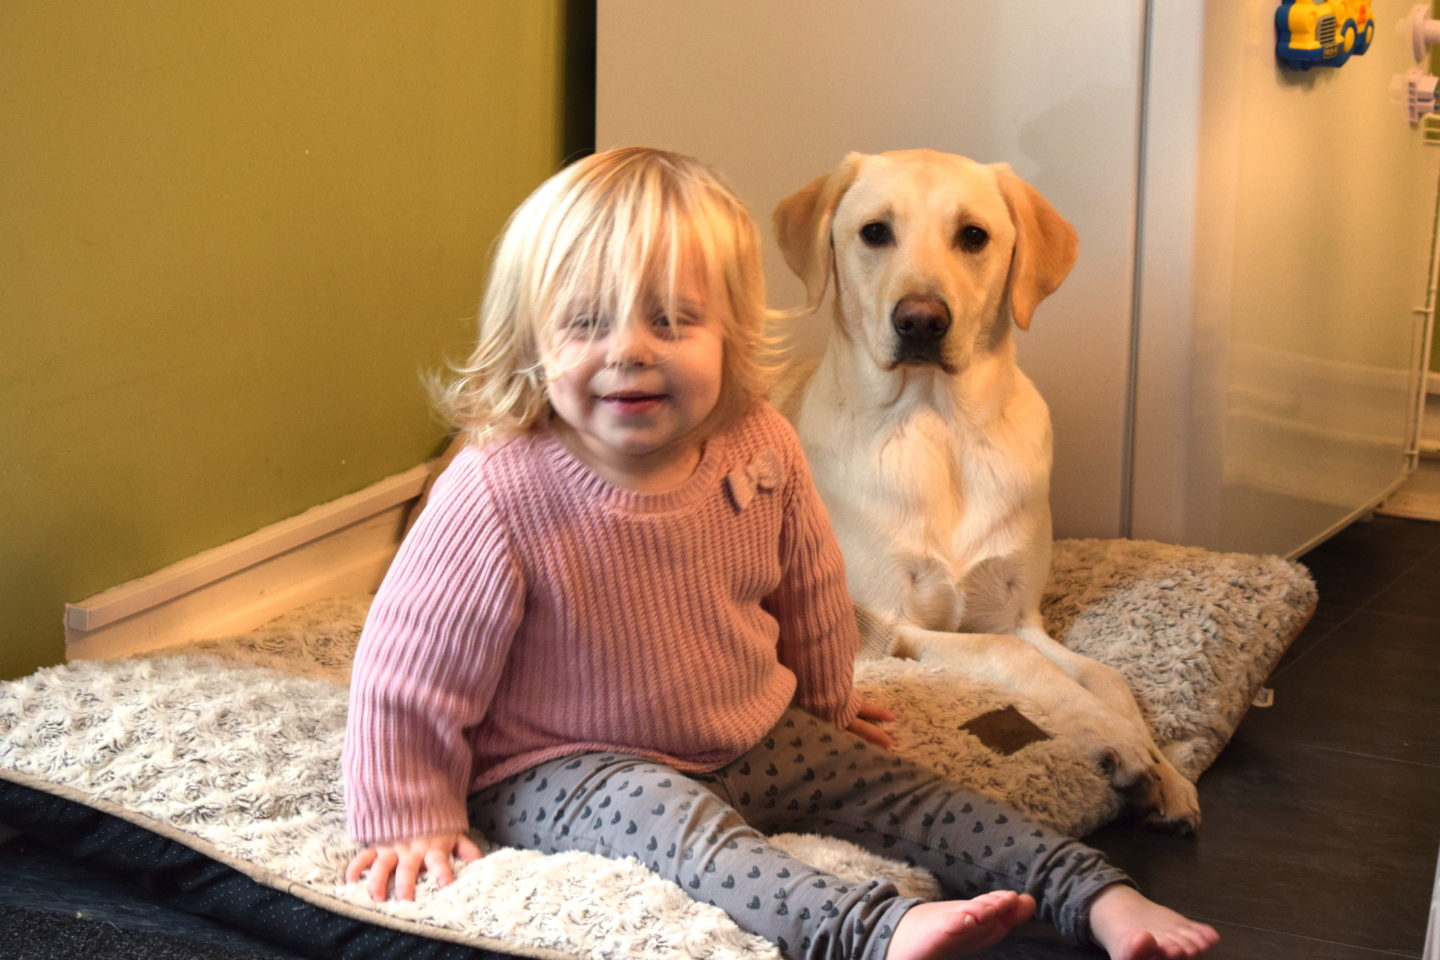 22 months old girl sitting in a dog bed with a yellow labrador